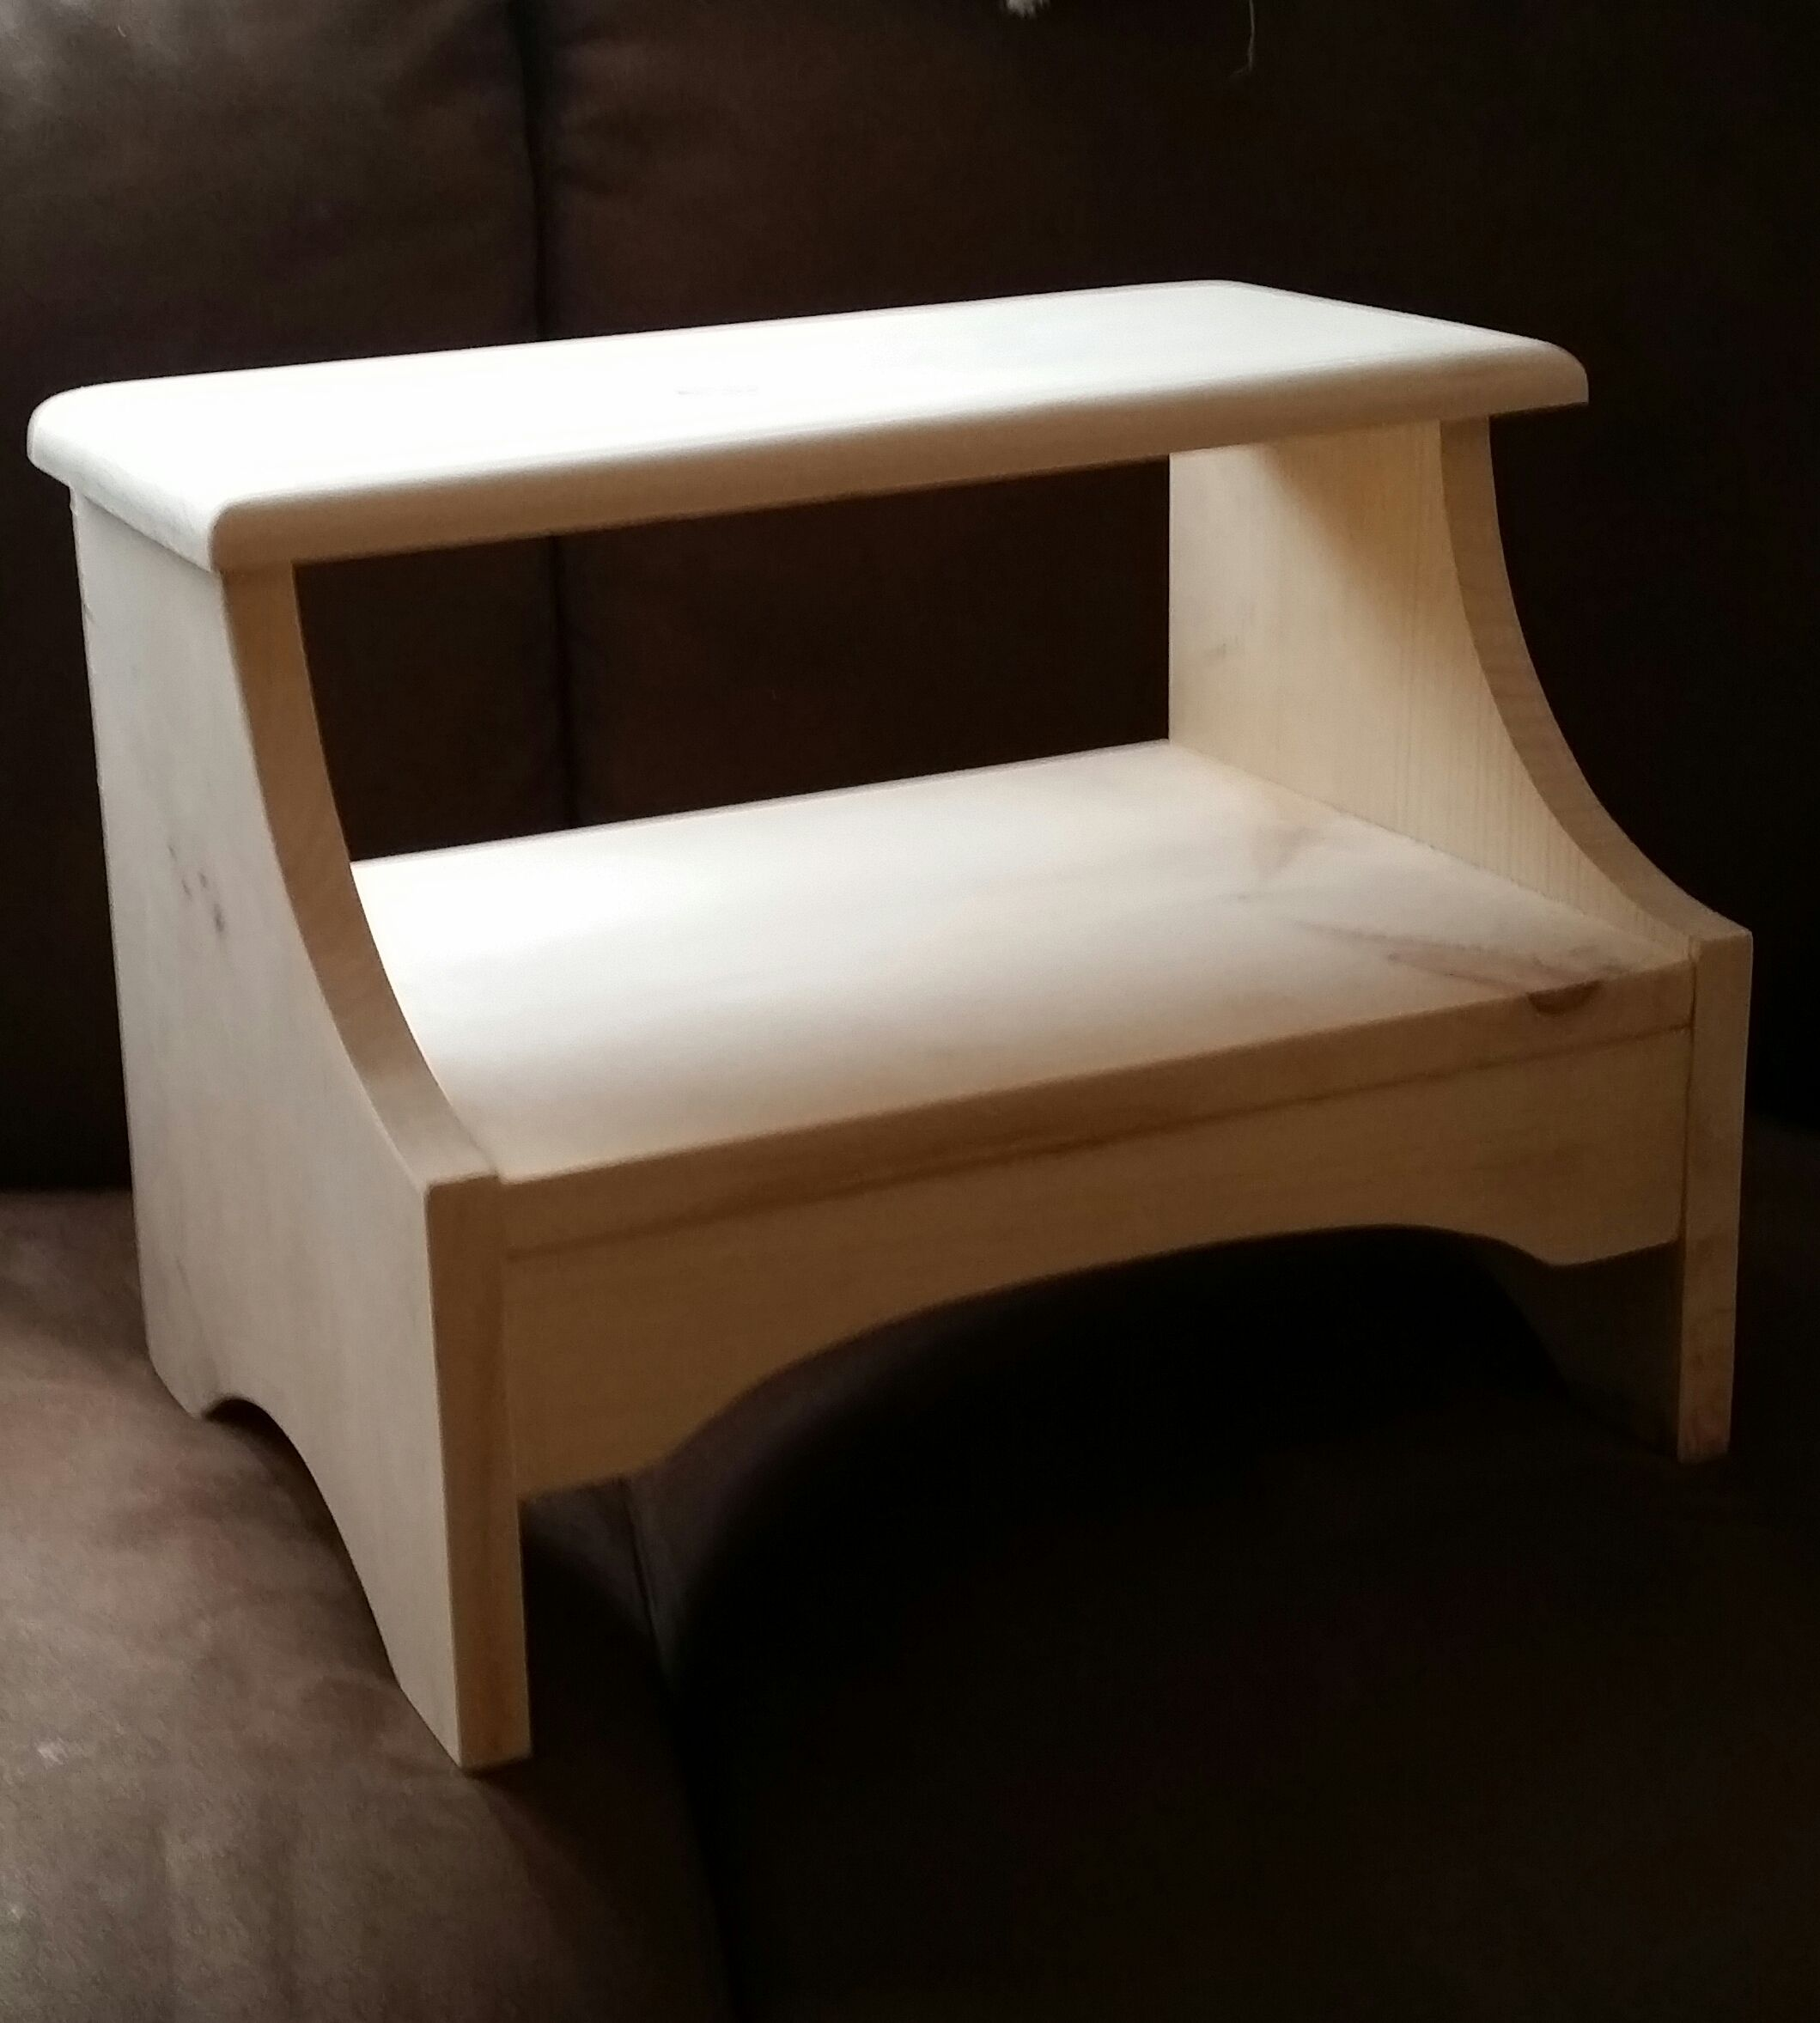 Buy A Hand Crafted Naked Pine Bedside Step Stool Made To Order From Family Sawmill Restorations